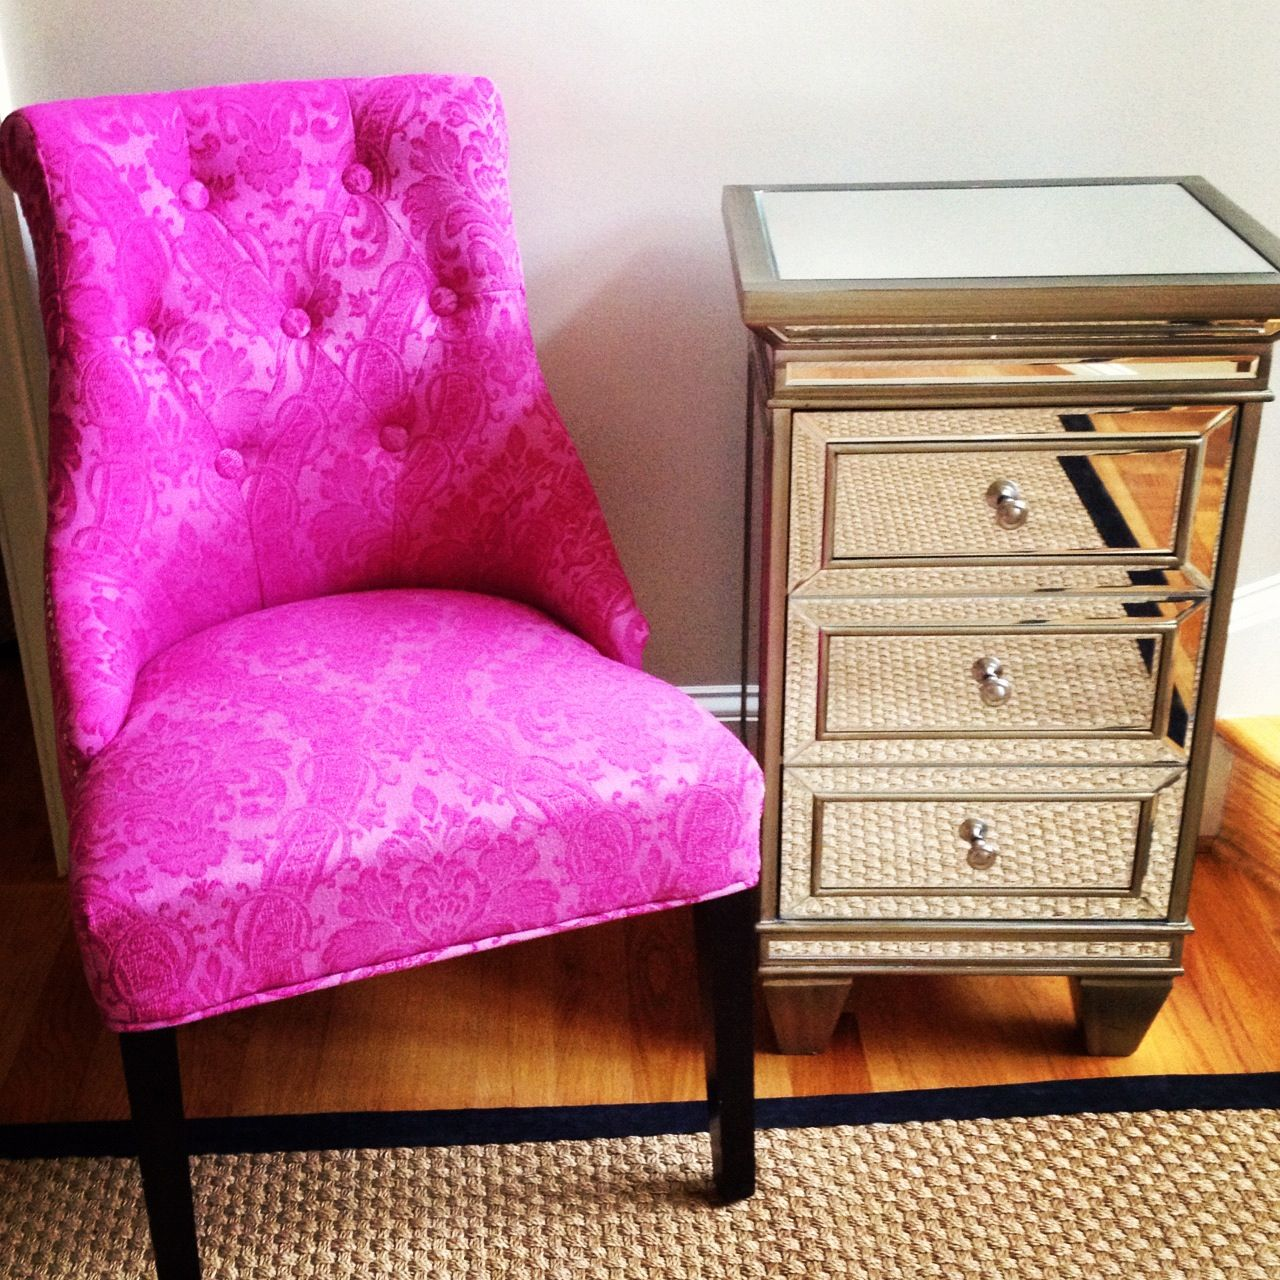 Cynthia Rowley Chair and Mirrored Side Table from